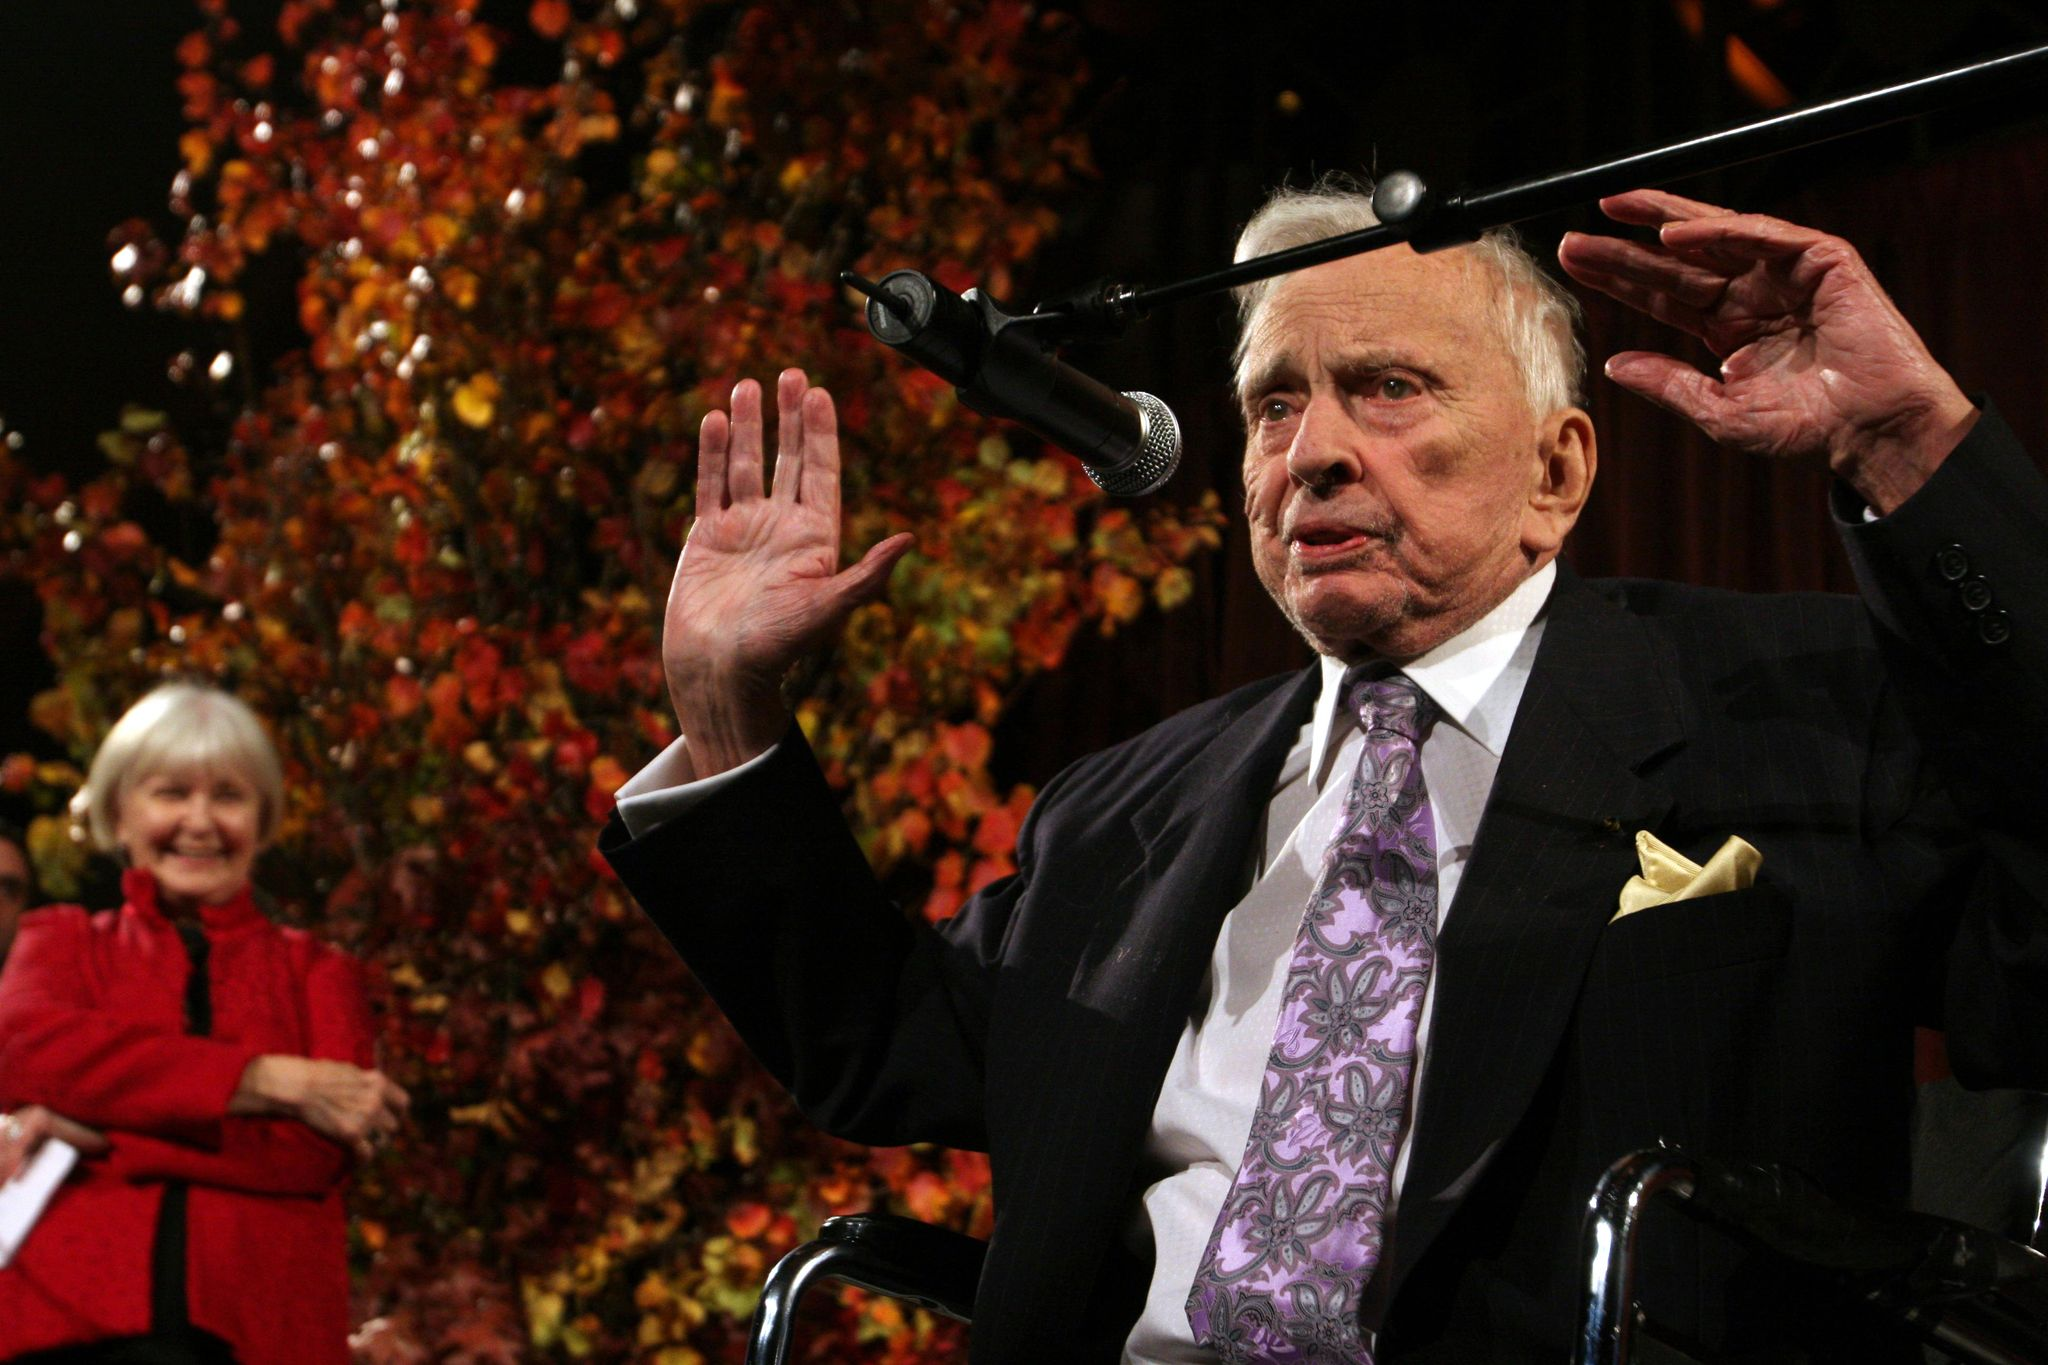 Gore Vidal book becomes best-seller after Julian Assange arrest